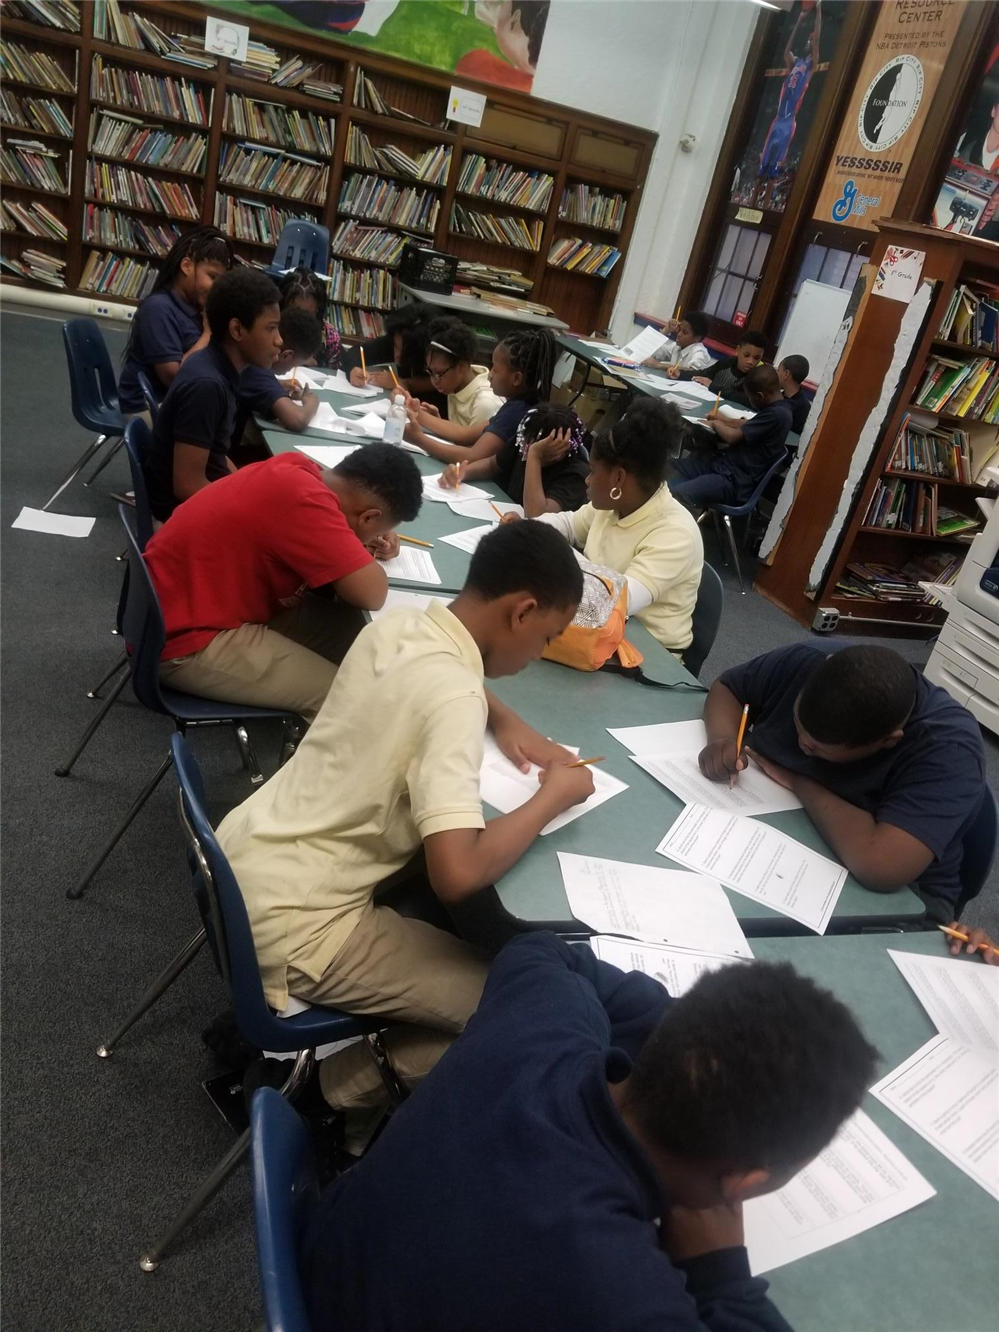 6th Grade students completing class work